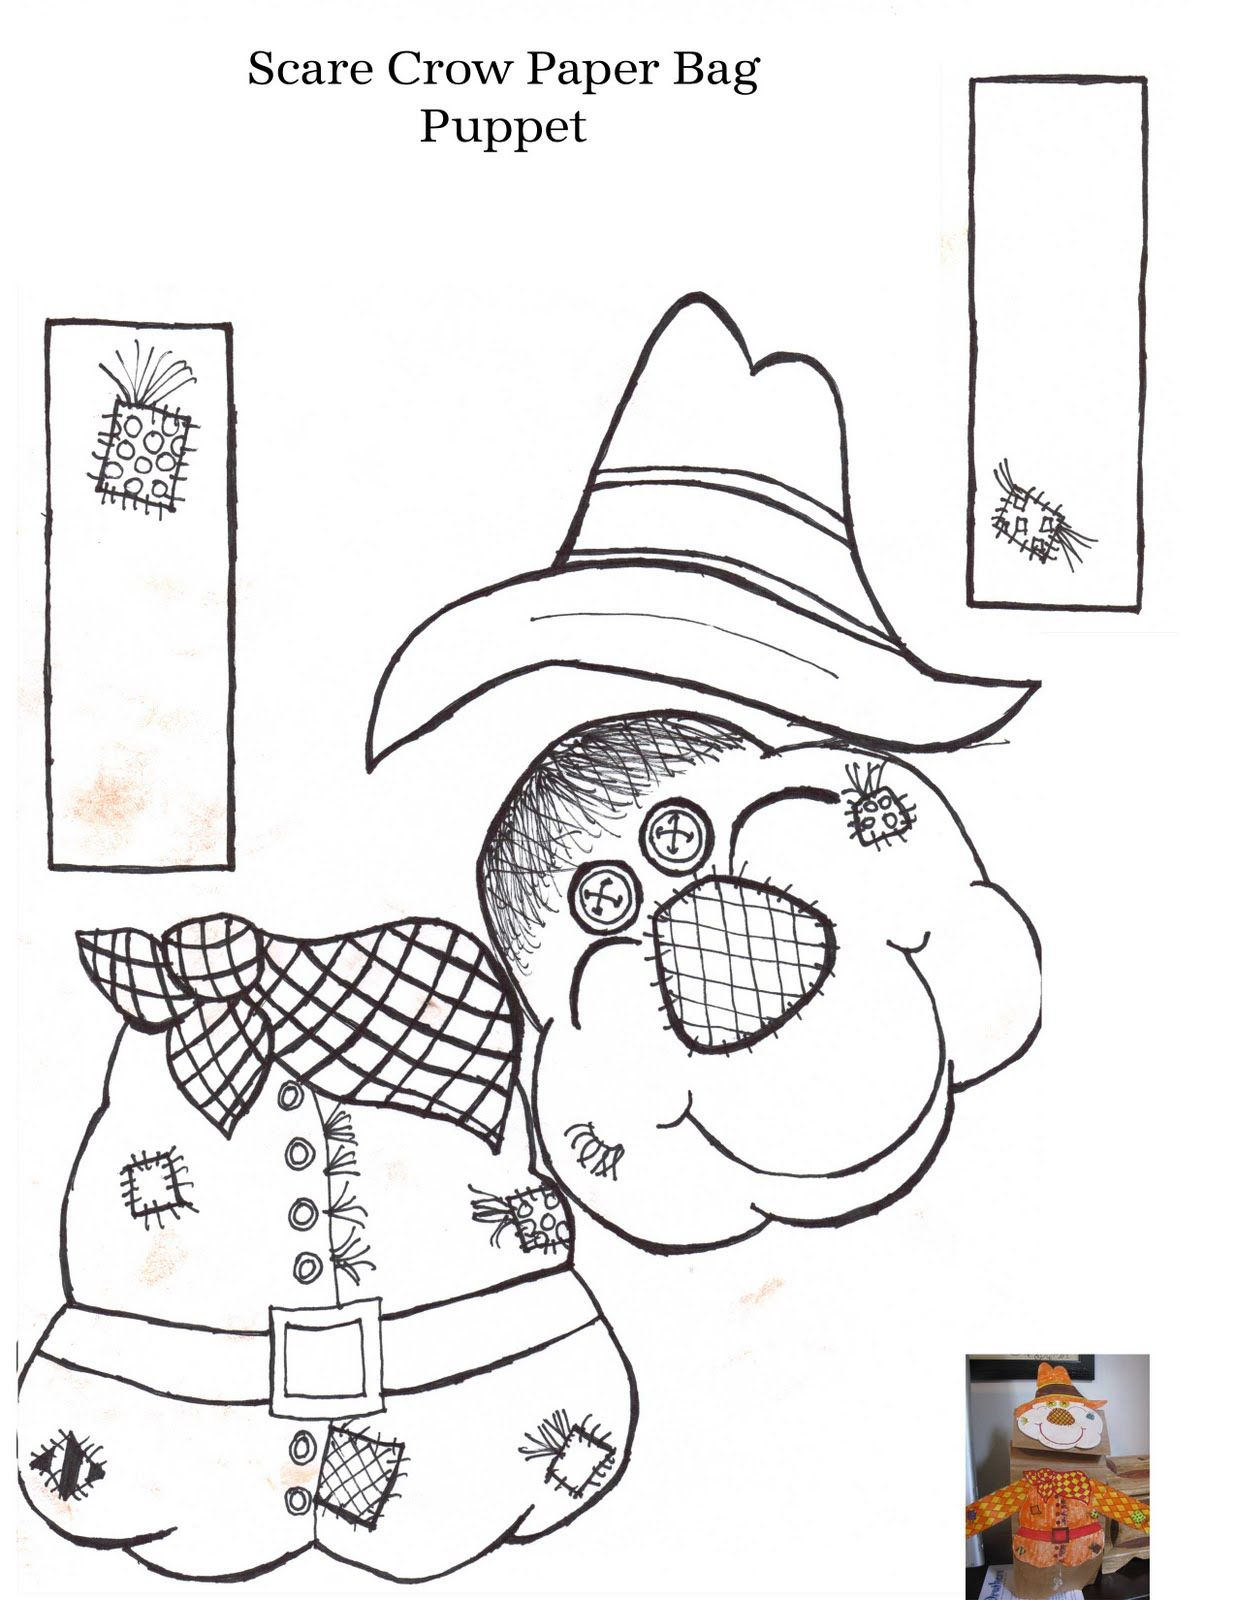 picture relating to Scarecrow Printable known as Printable Scarecrow Designs Aussie Pumpkin Patch: Mr